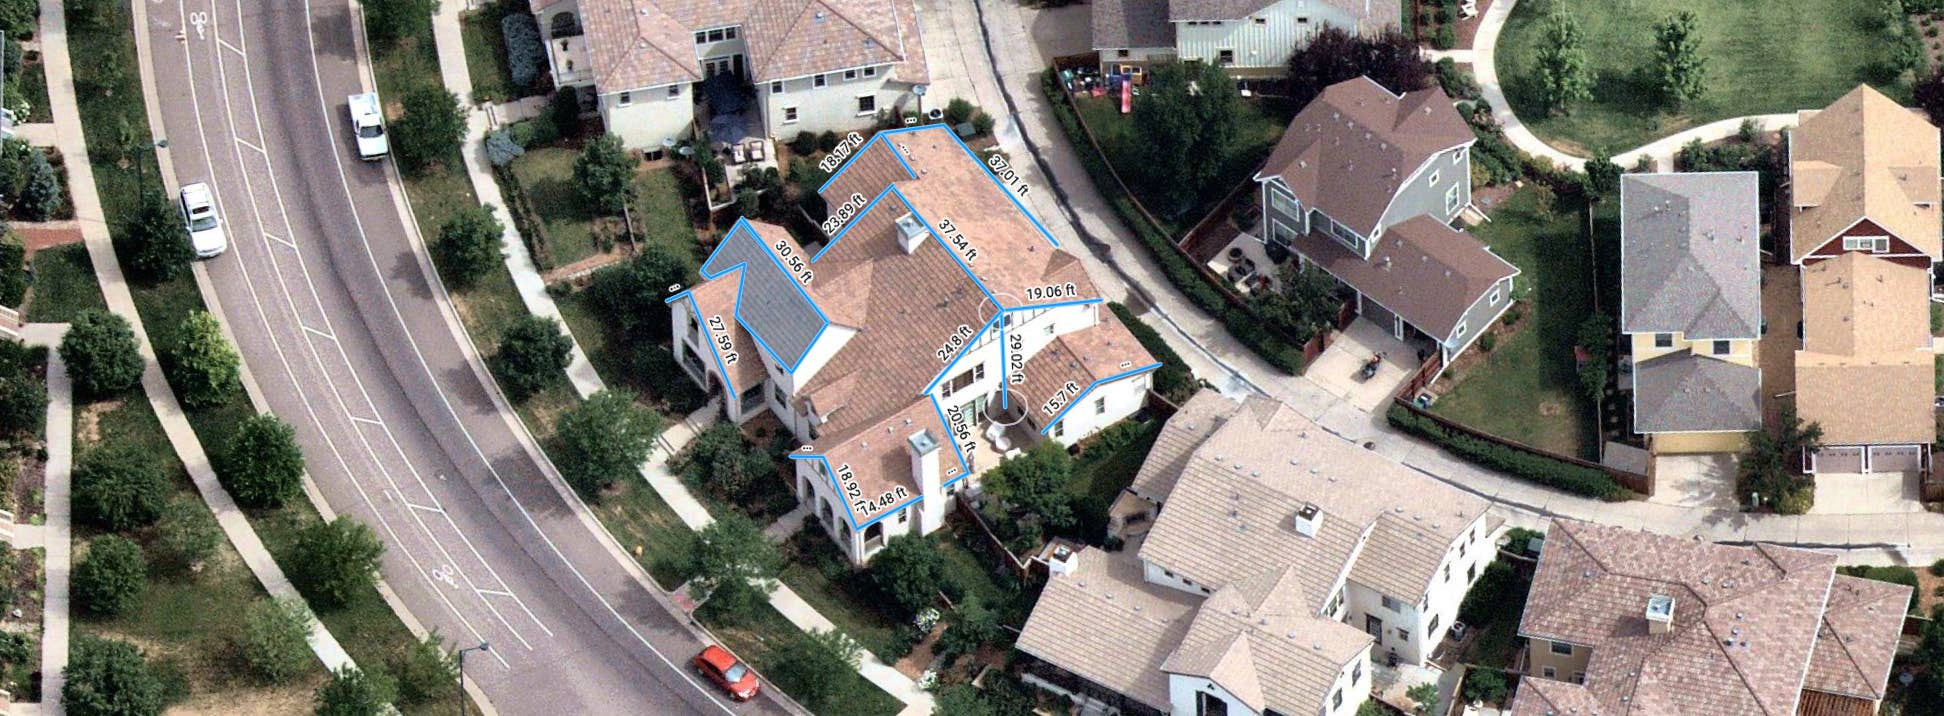 aerial, aerial view, roofing, measurements, Denver, CO, 2018 June 23